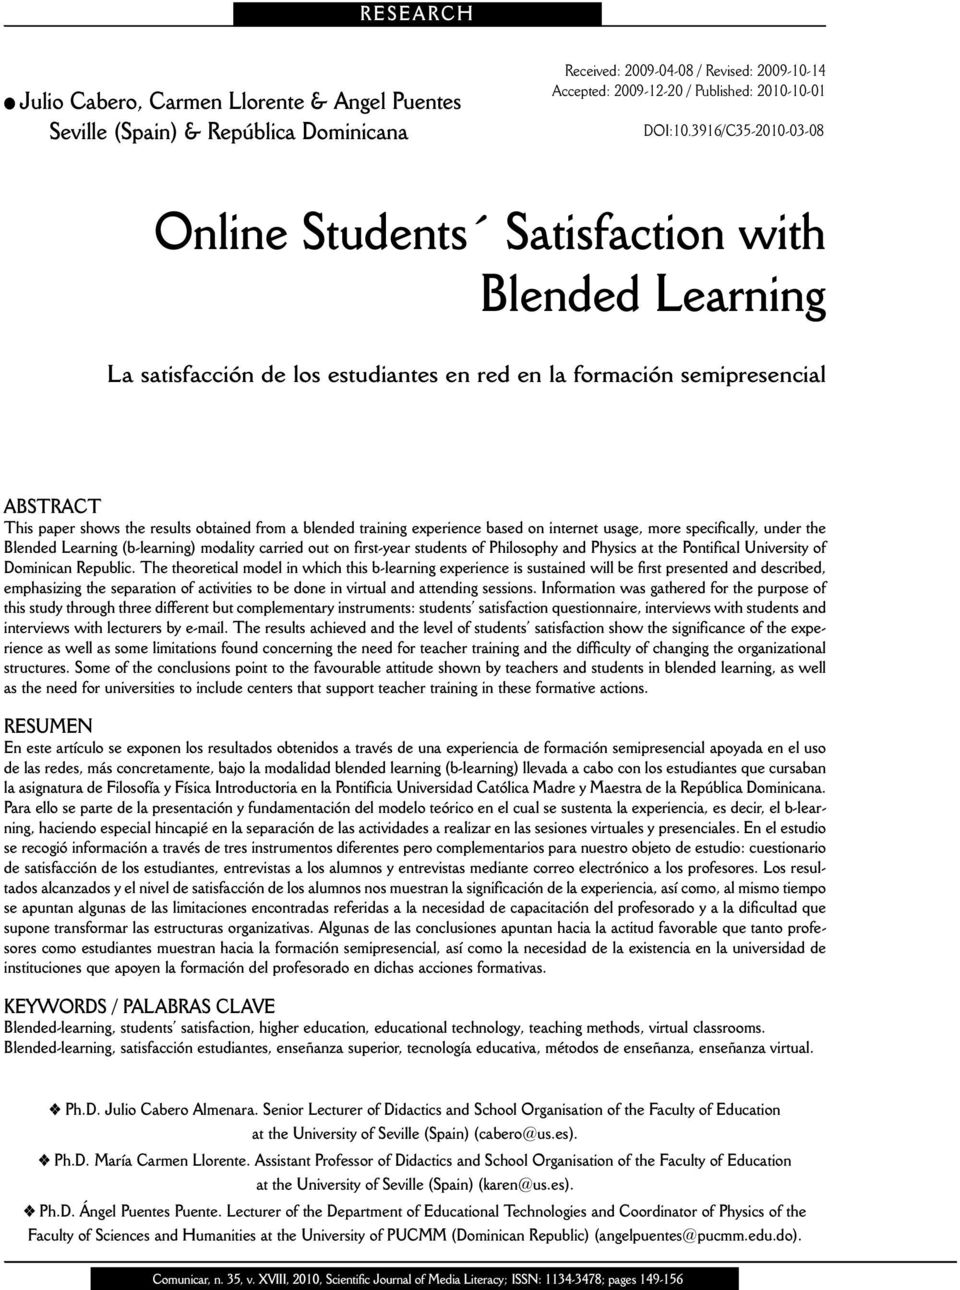 blended training experience based on internet usage, more specifically, under the Blended Learning (b-learning) modality carried out on first-year students of Philosophy and Physics at the Pontifical